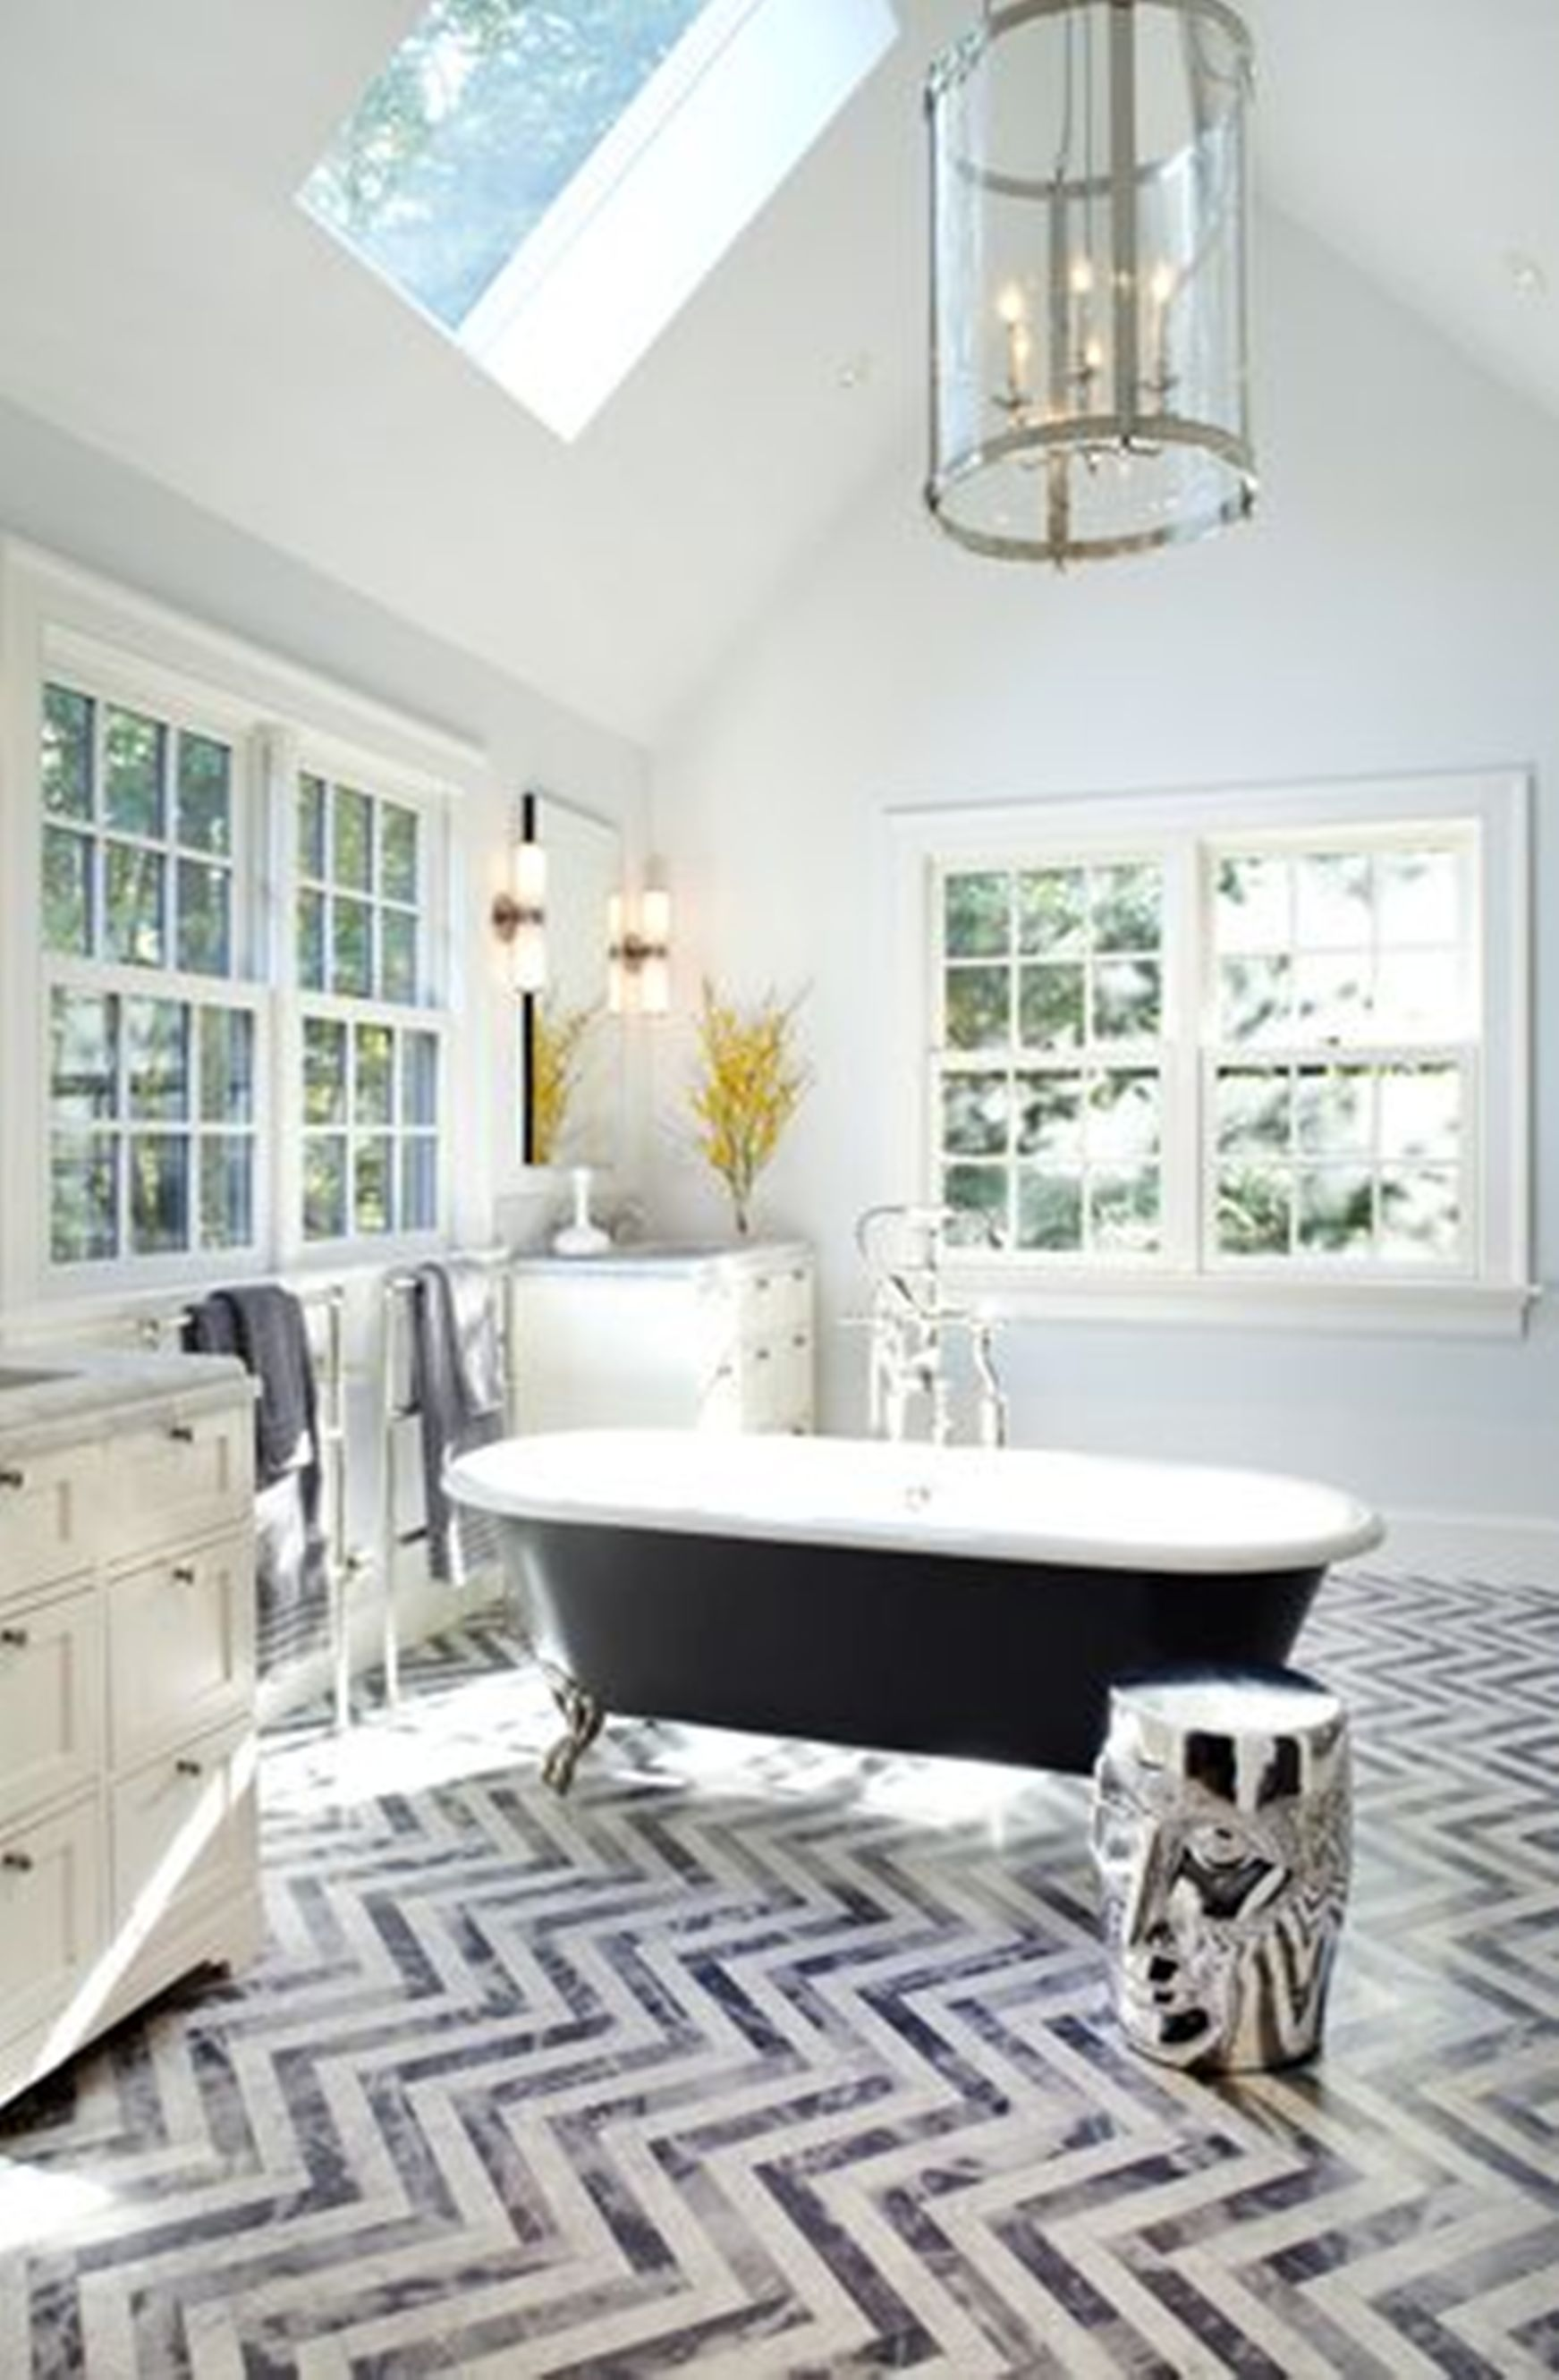 Floor tile designs ideas to enhance your floor appearance for Tile floors bathroom